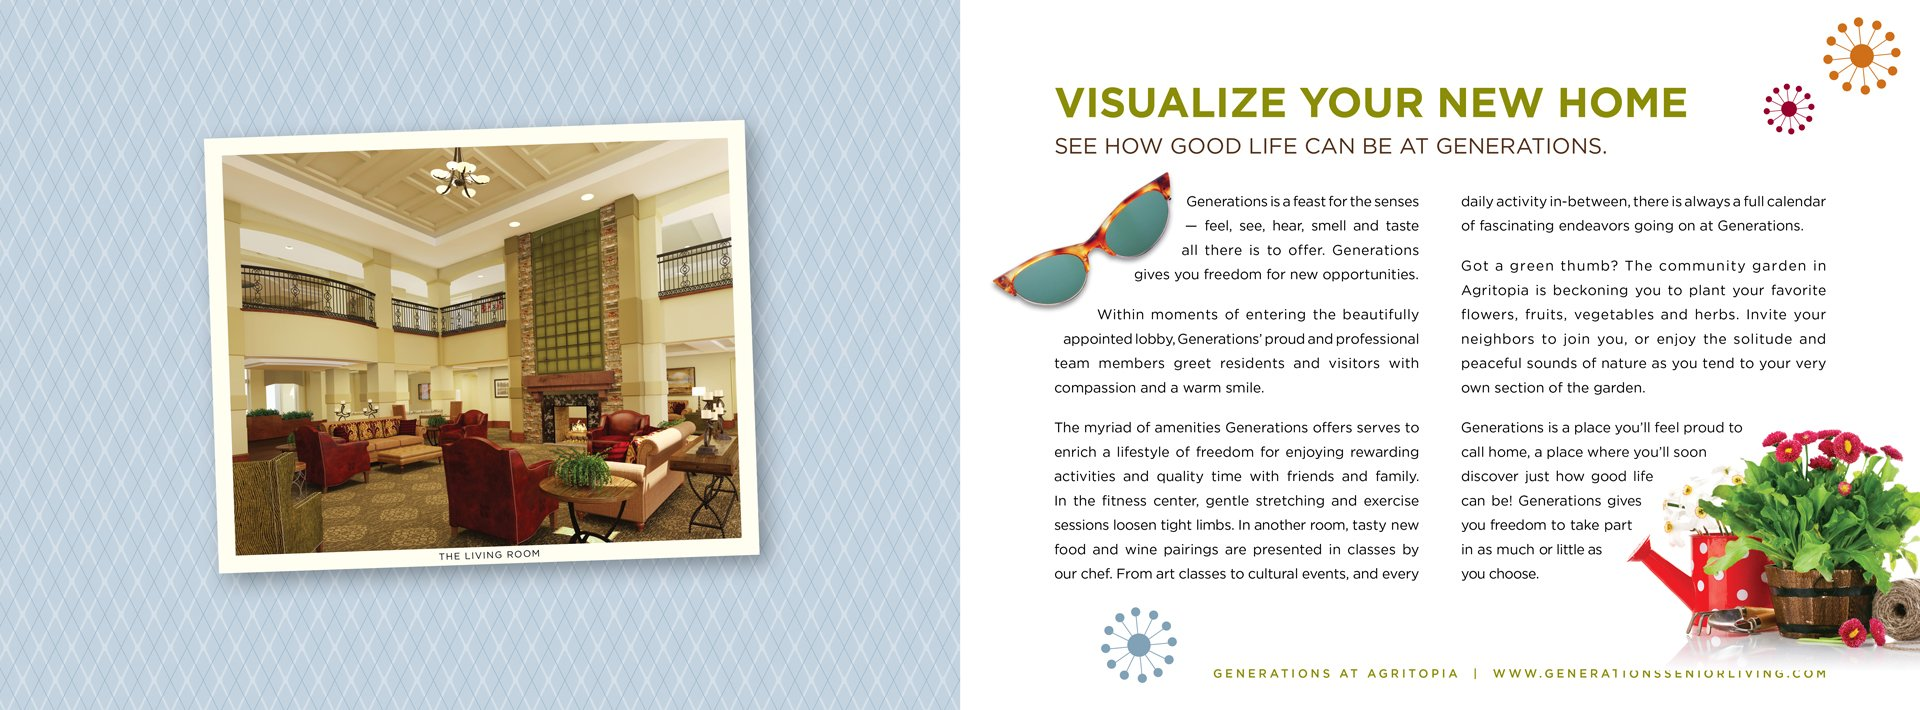 Visualize Your New Home